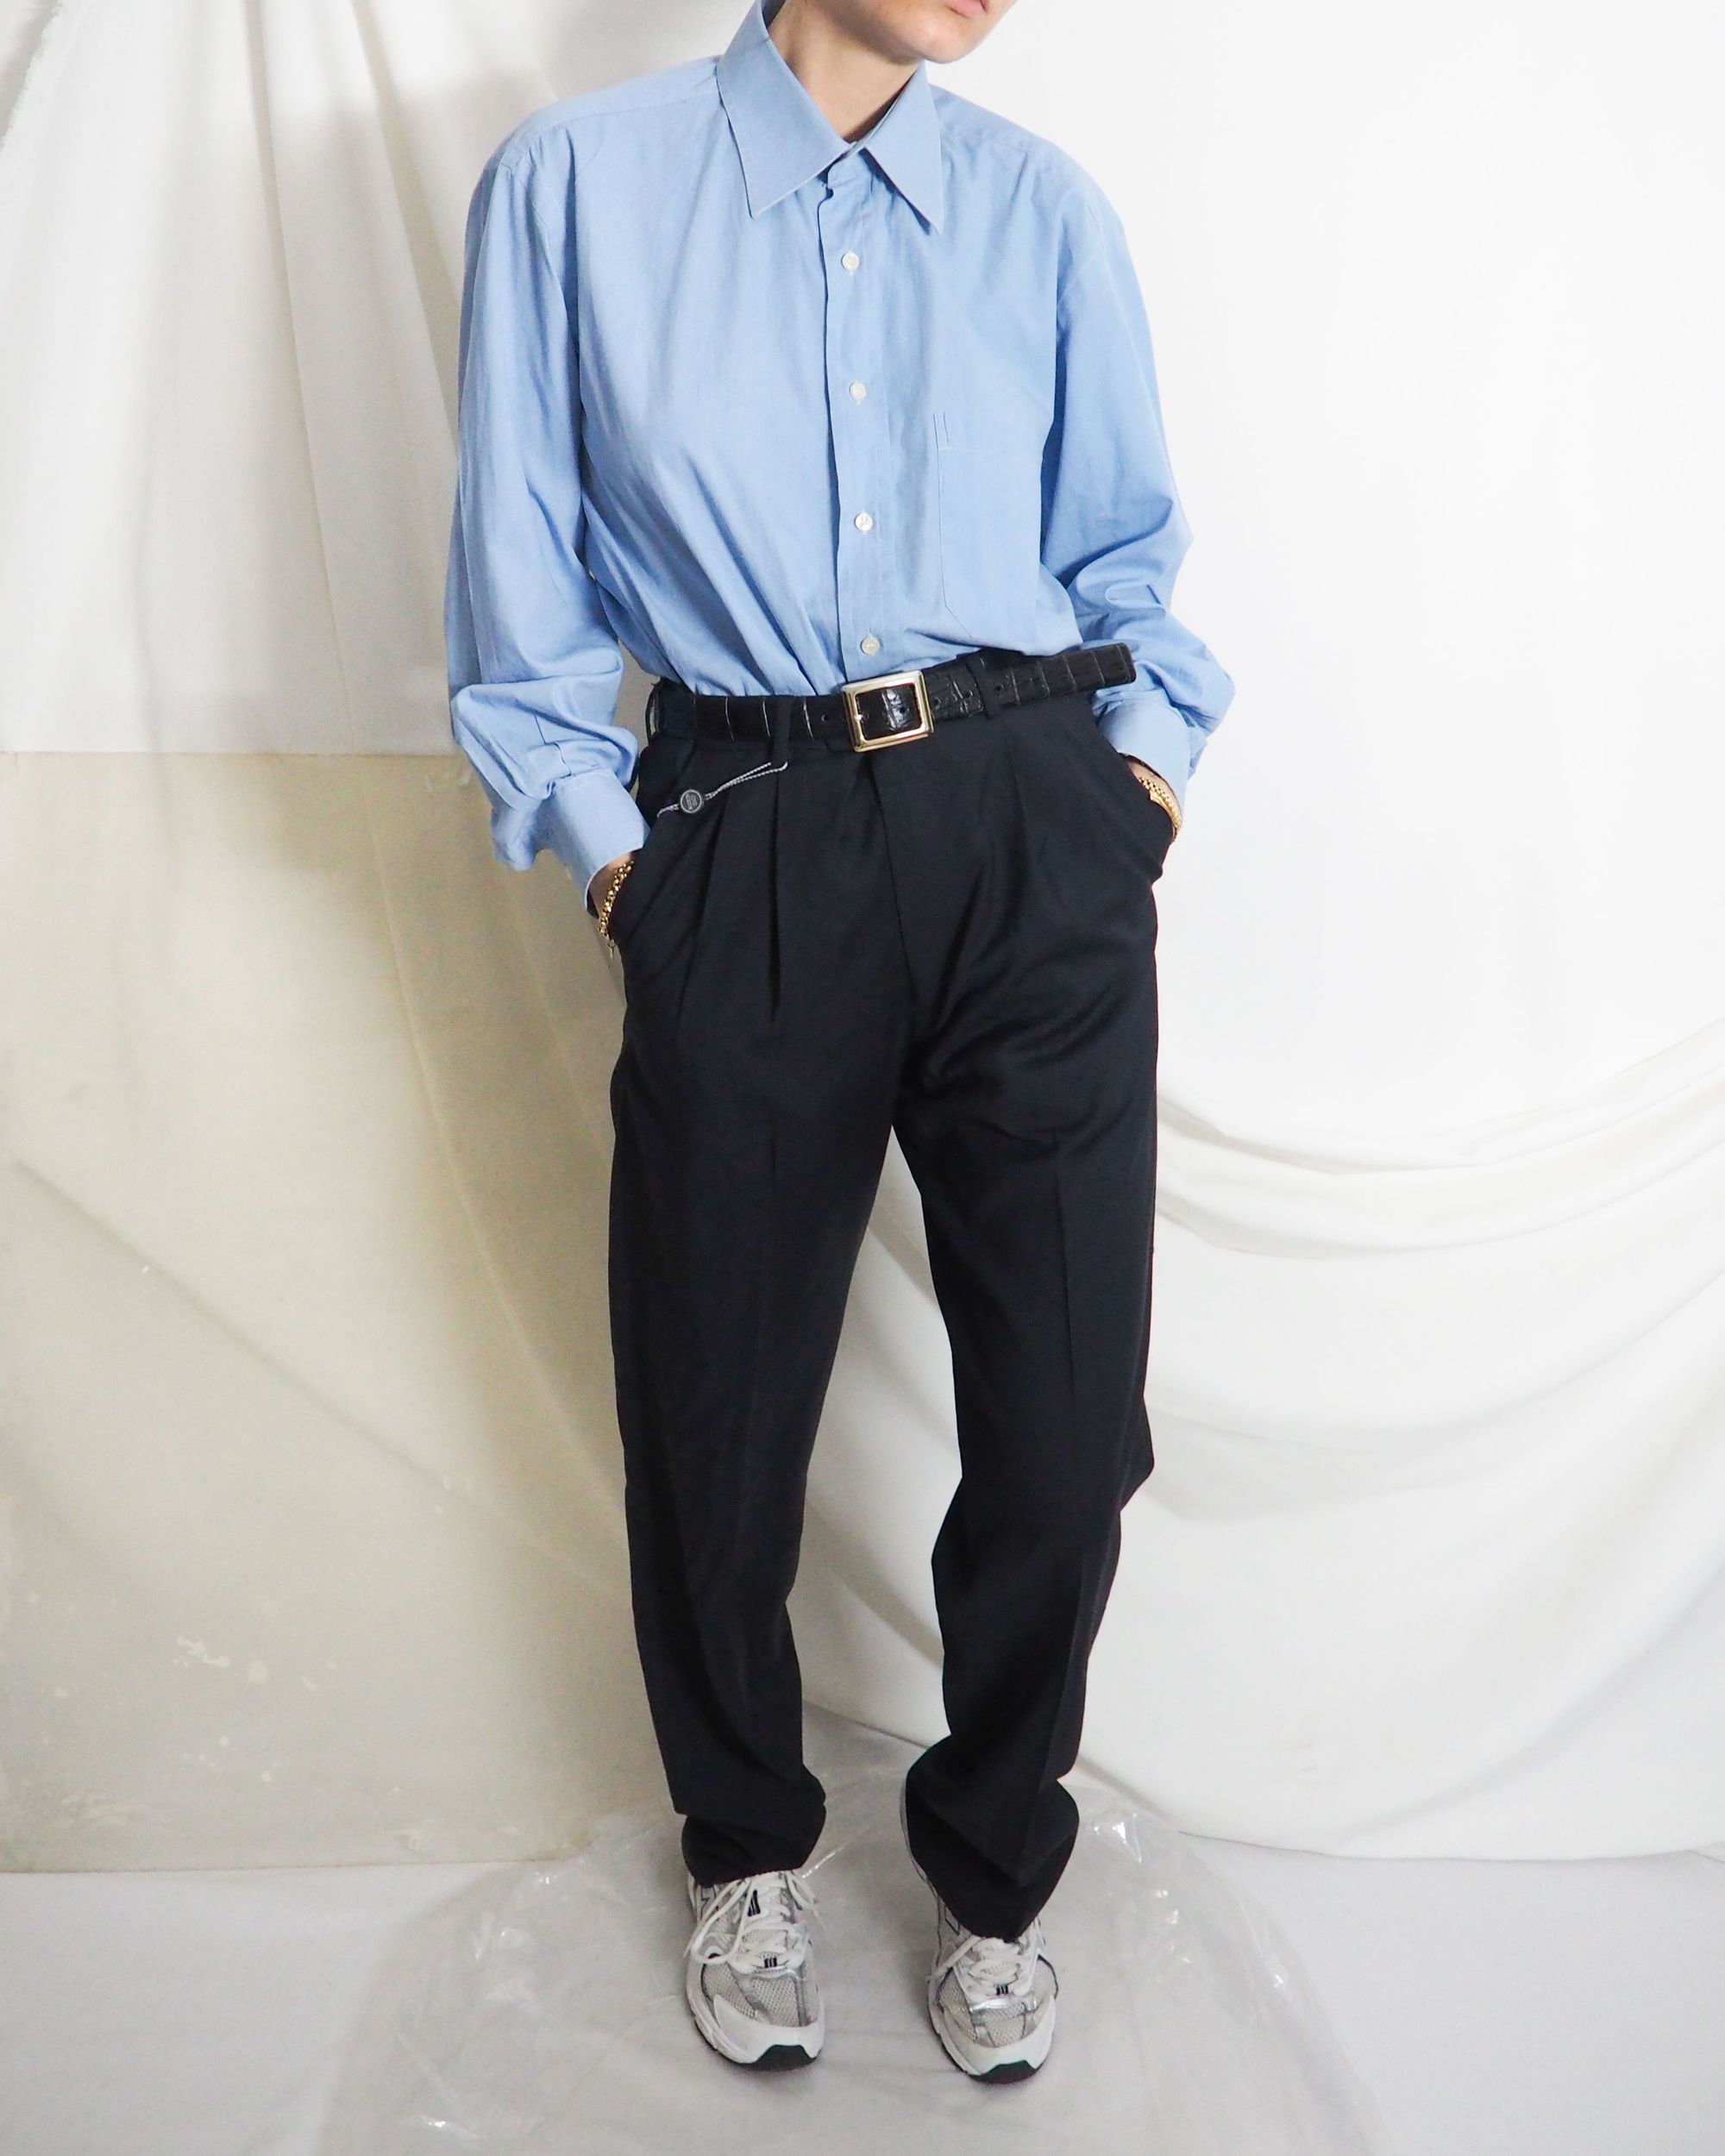 Vintage Blue Oversized Shirt With Navy Pleated Pants Trousers And New Balance 530 Untitled 19 In 2020 Vintage Clothing Online Vintage Outfits Online Shopping Clothes